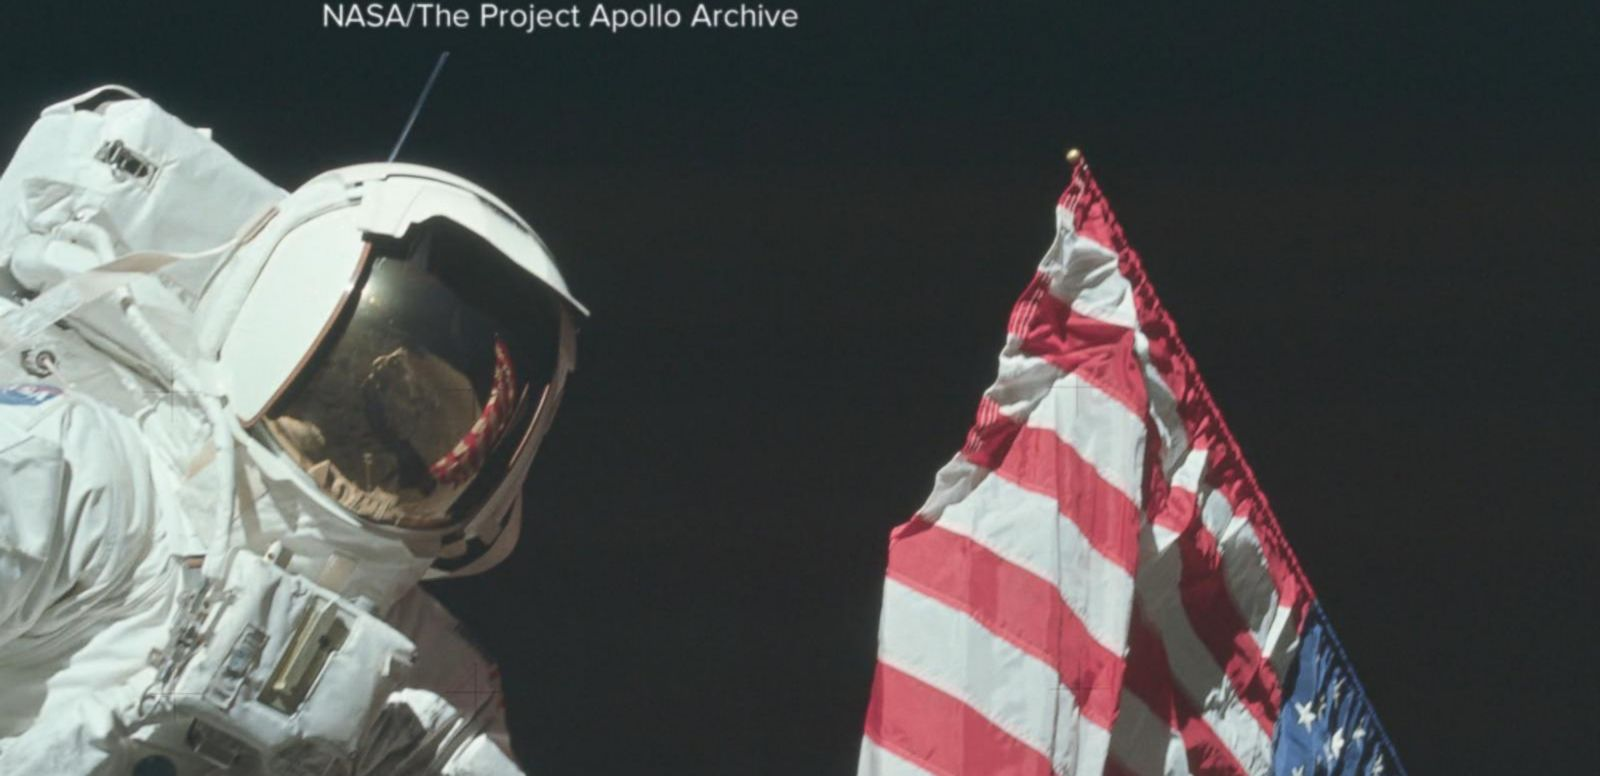 VIDEO: Index: NASA Opens Space Archives Releasing Thousands of Rare Photos